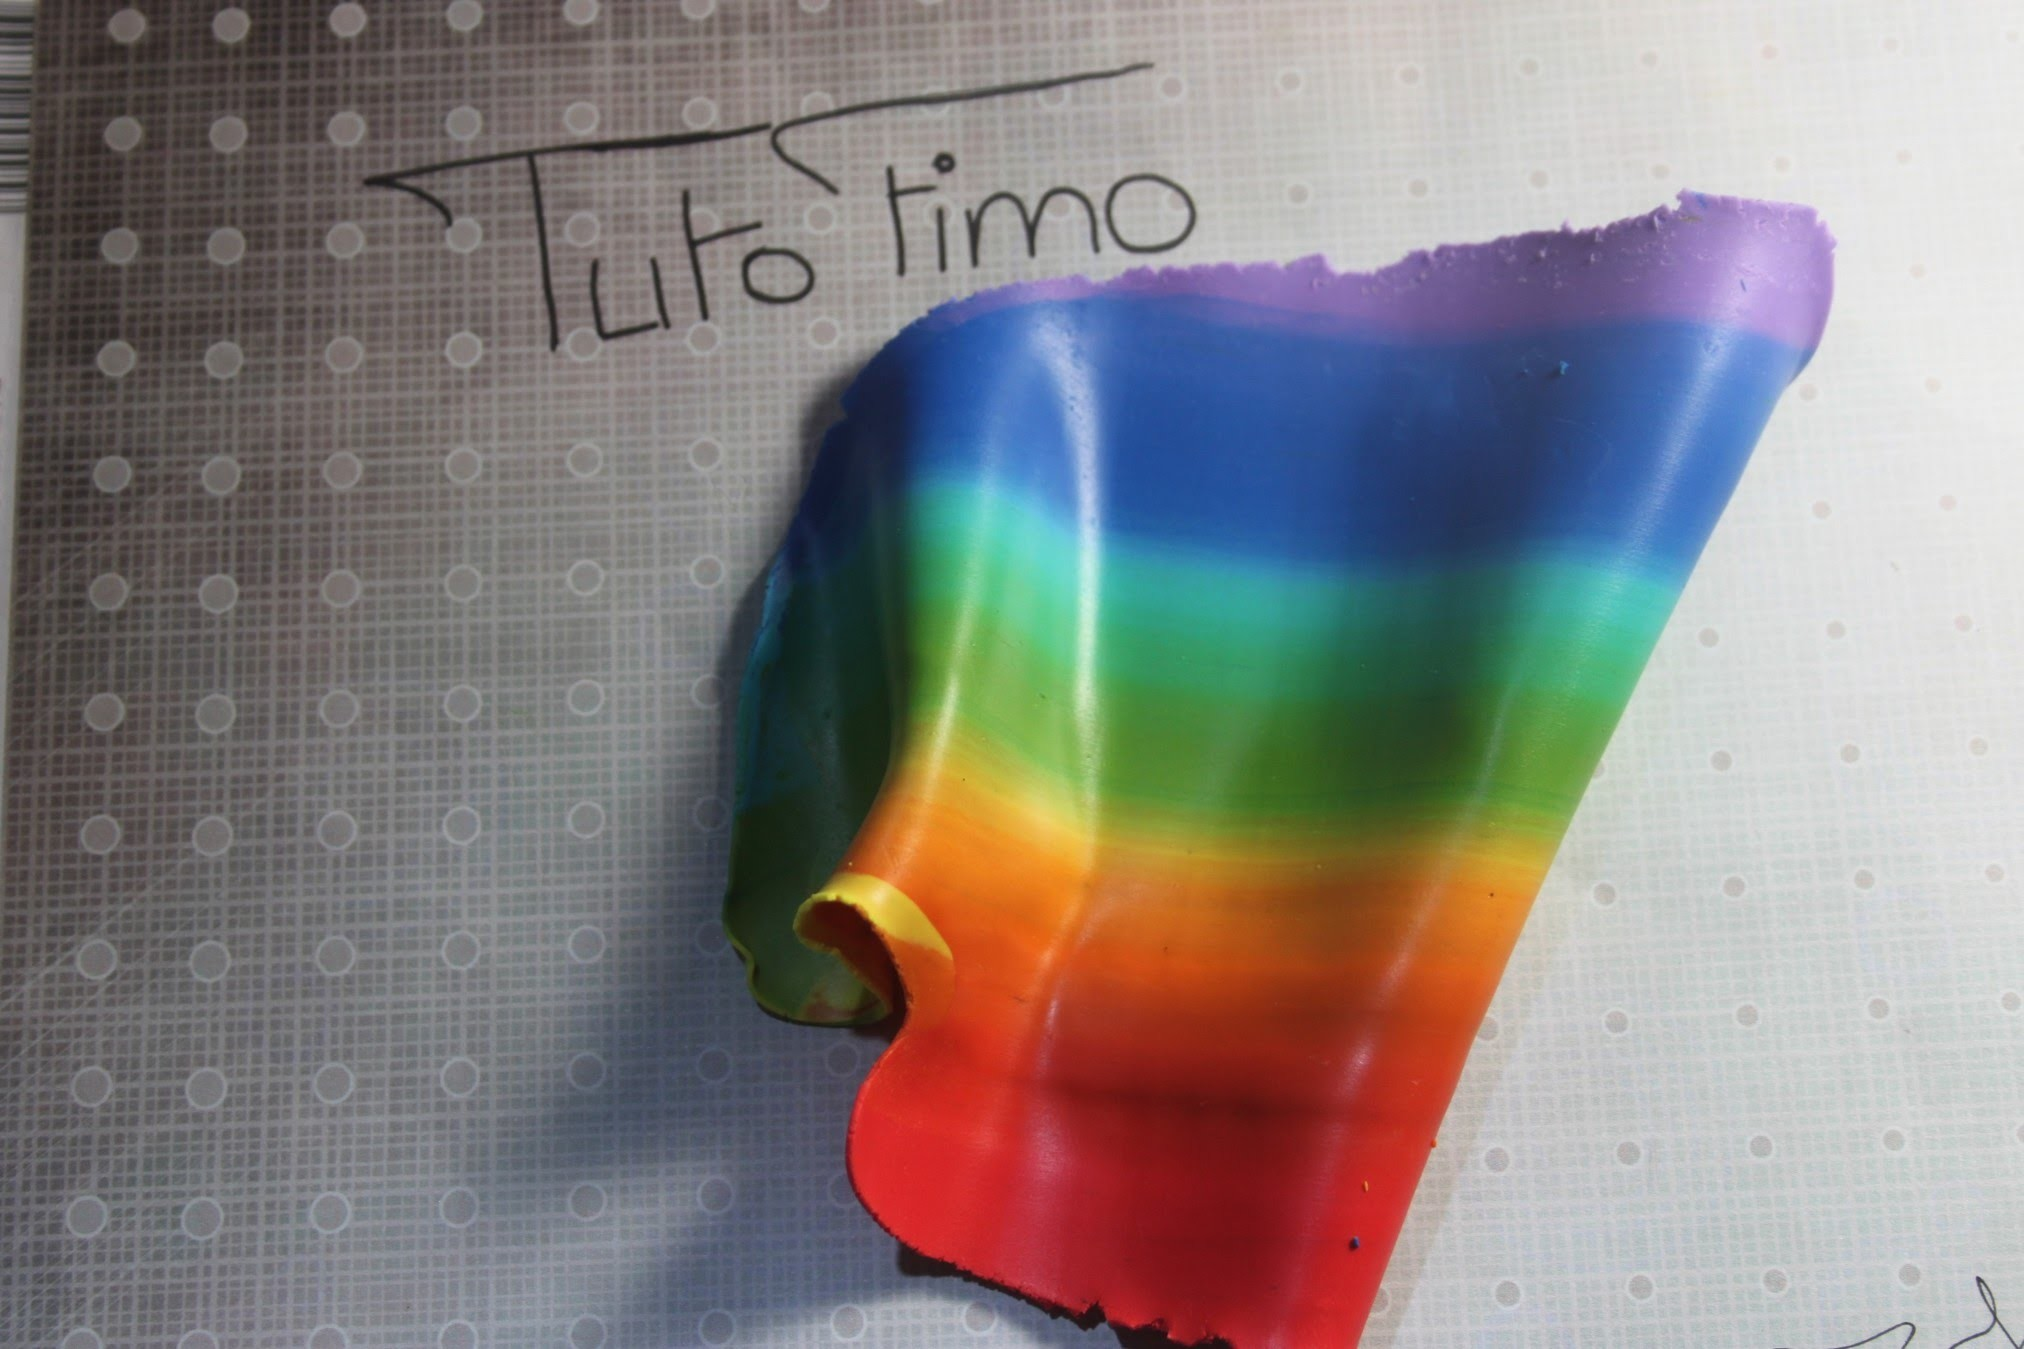 [♥✿ Tuto Fimo : Dégradé arc en ciel ✿♥] ~ [♥✿ Polymer Clay Tutorial : gradient rainbow ✿♥]